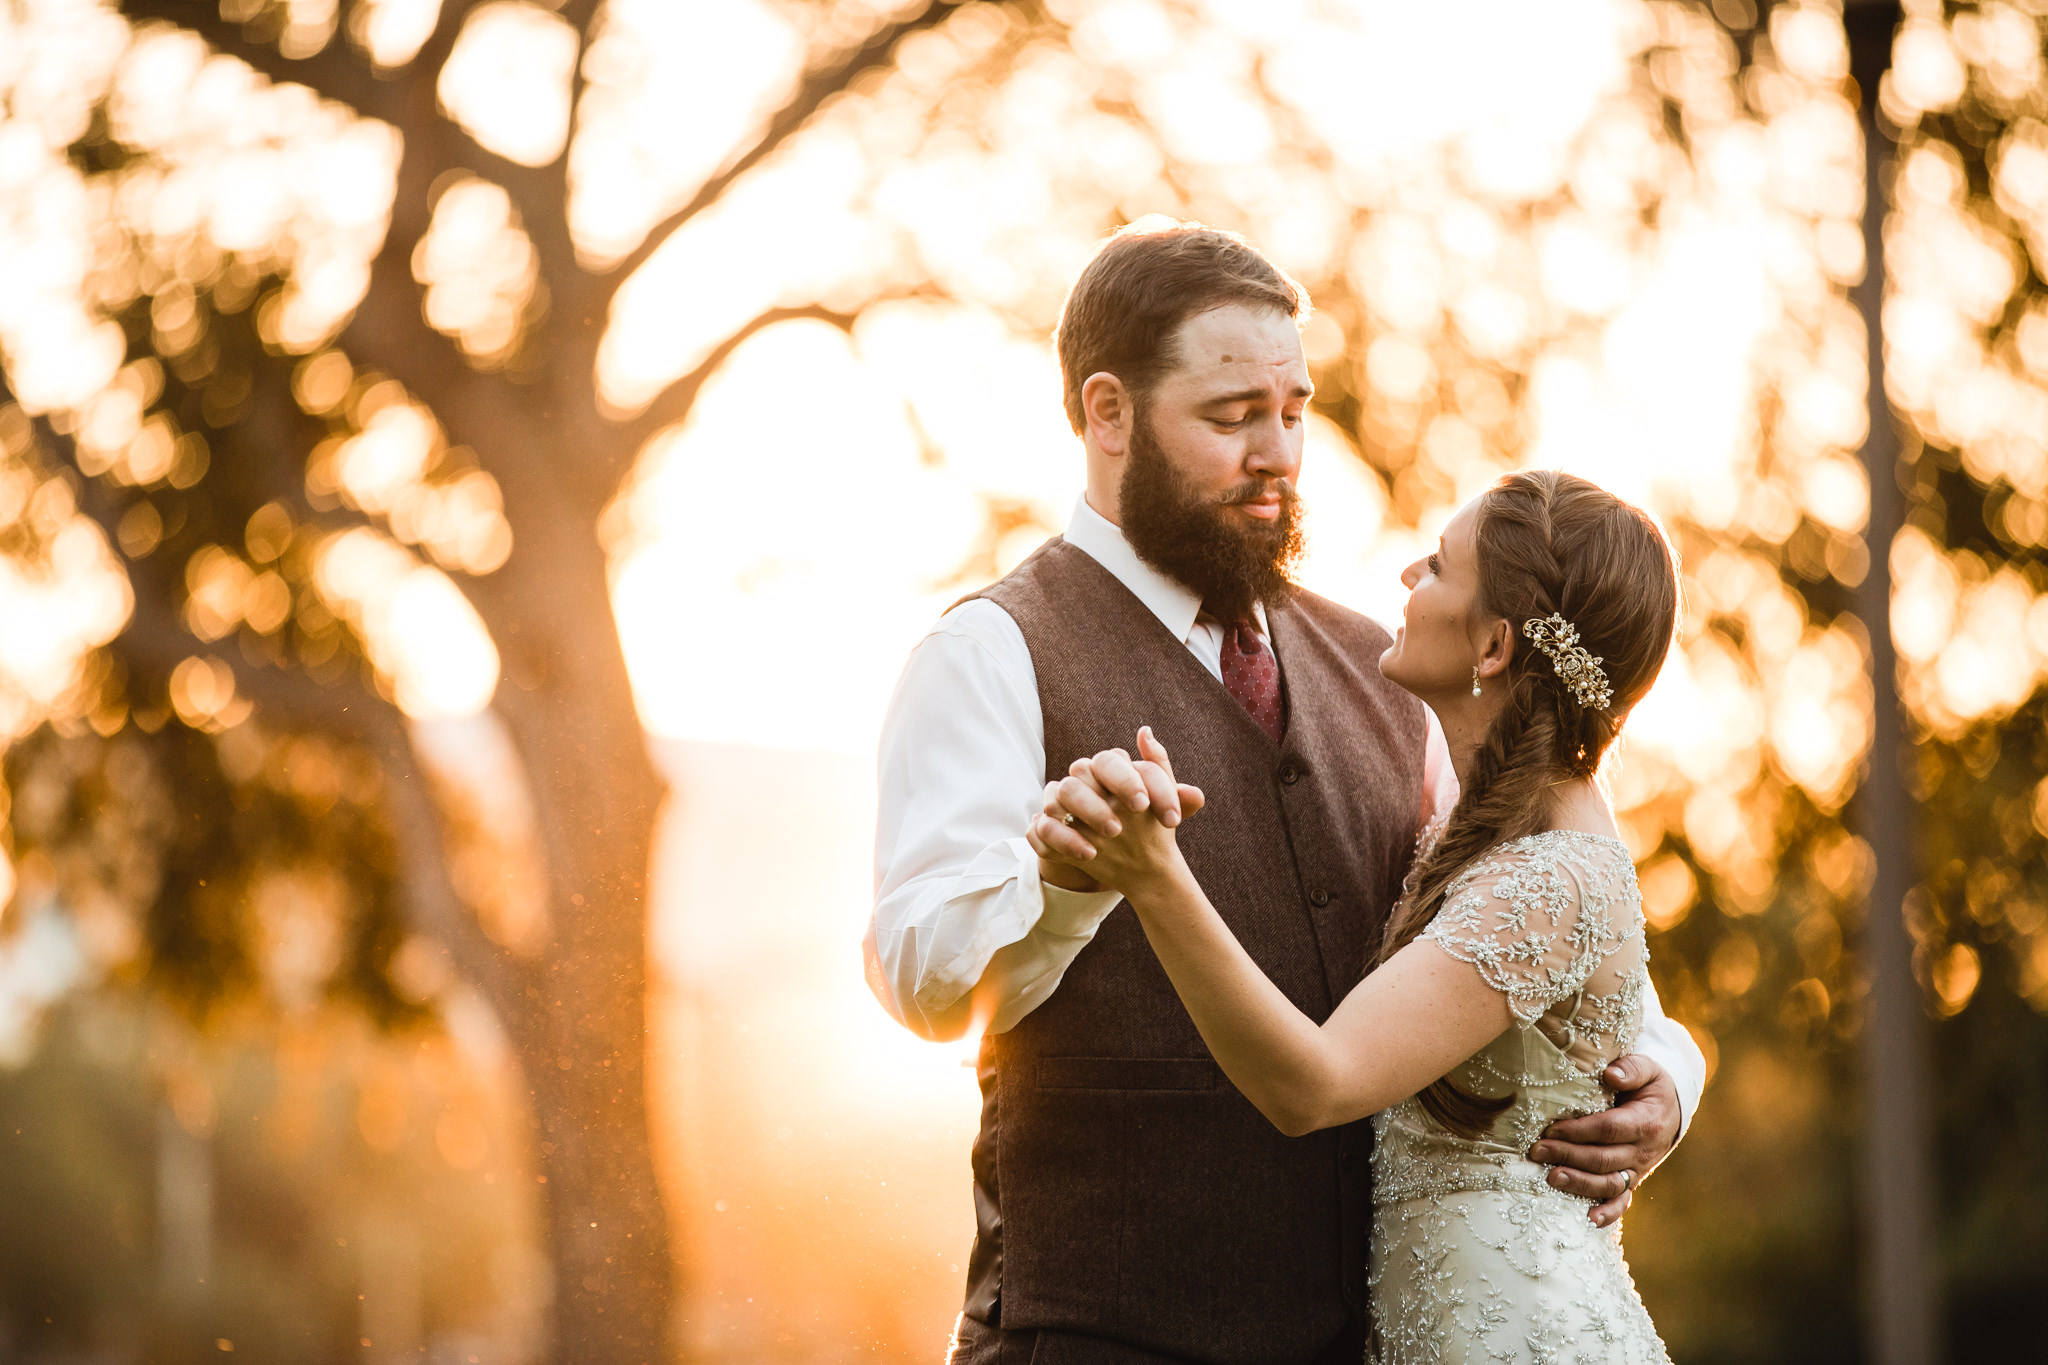 Sunset wedding photograph of bride and groom at Mirror Lake Park in St. Petersburg, Florida